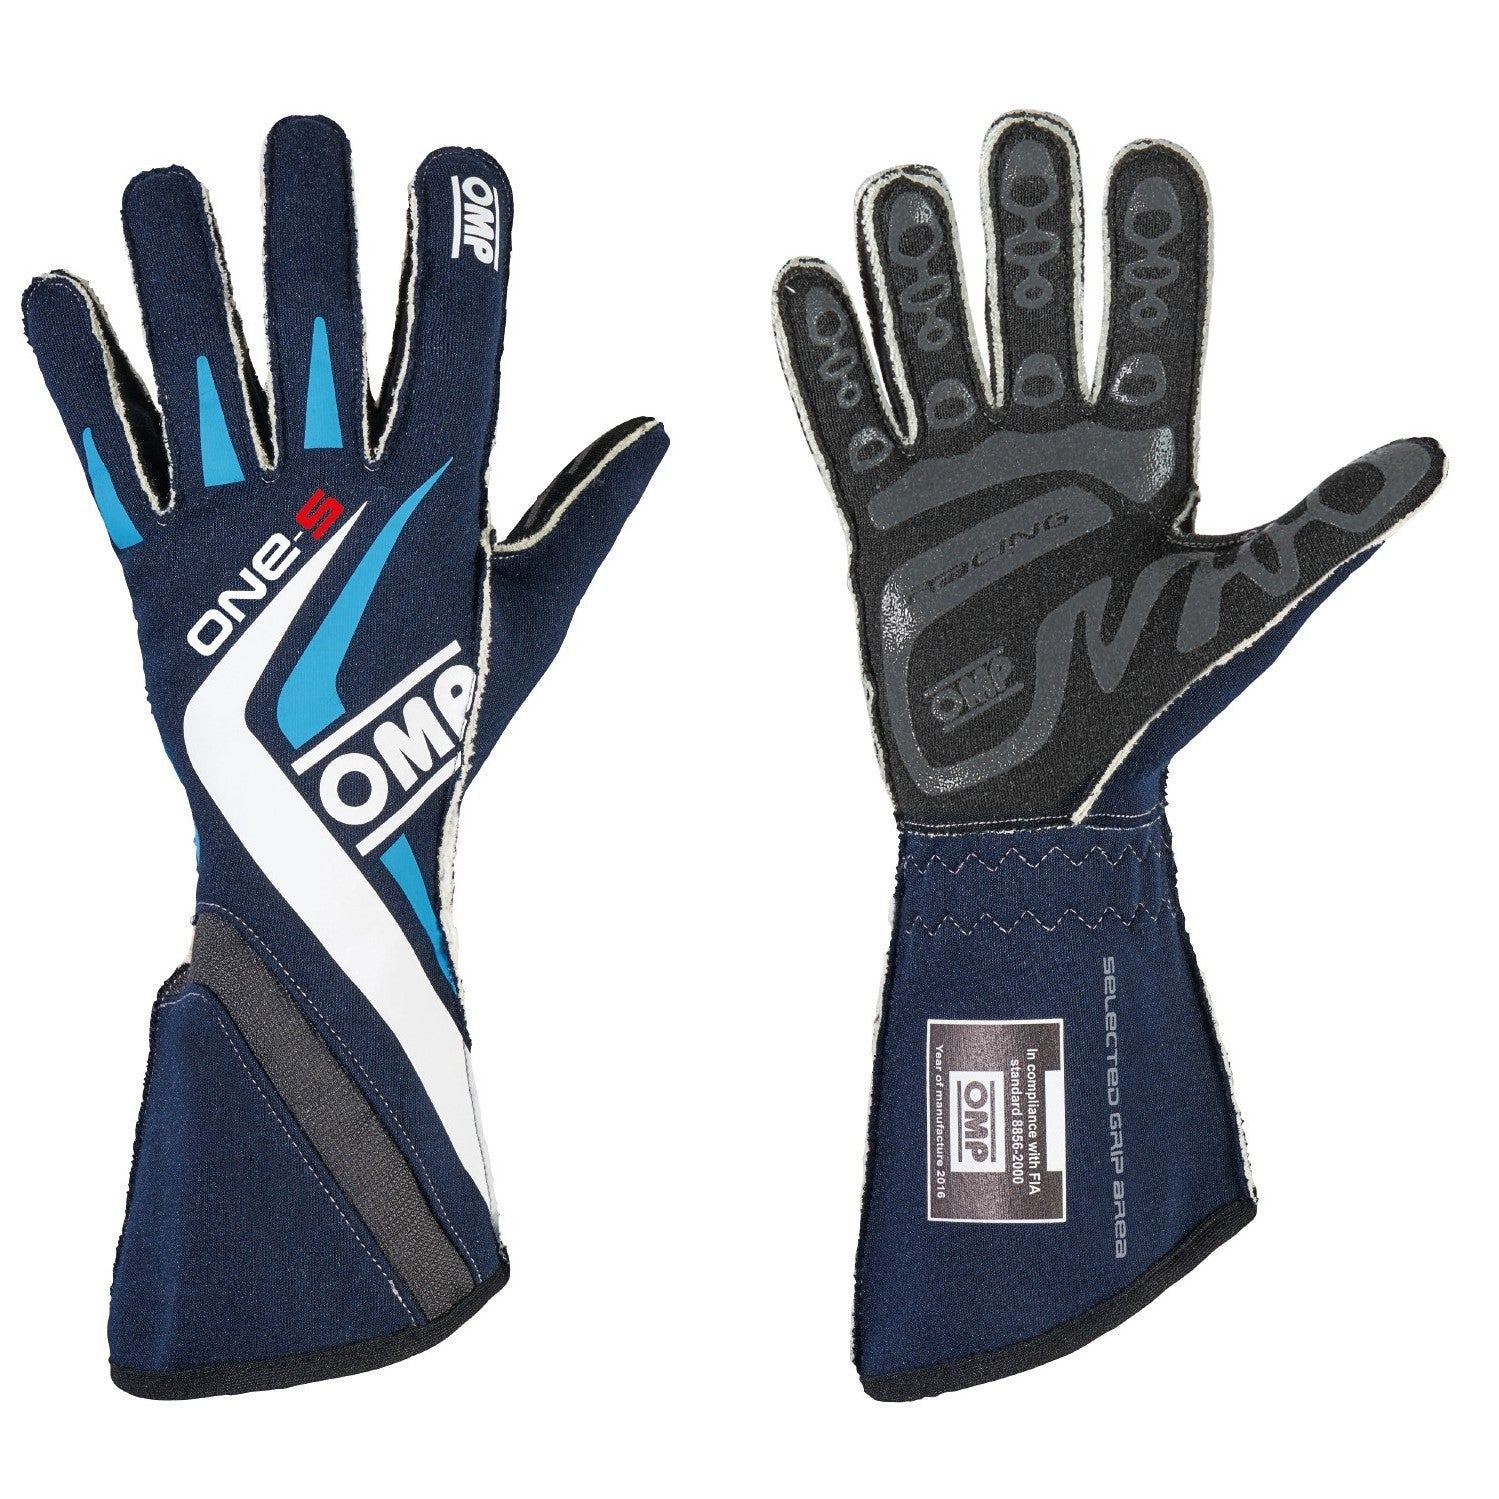 OMP One-S Gloves - Saferacer